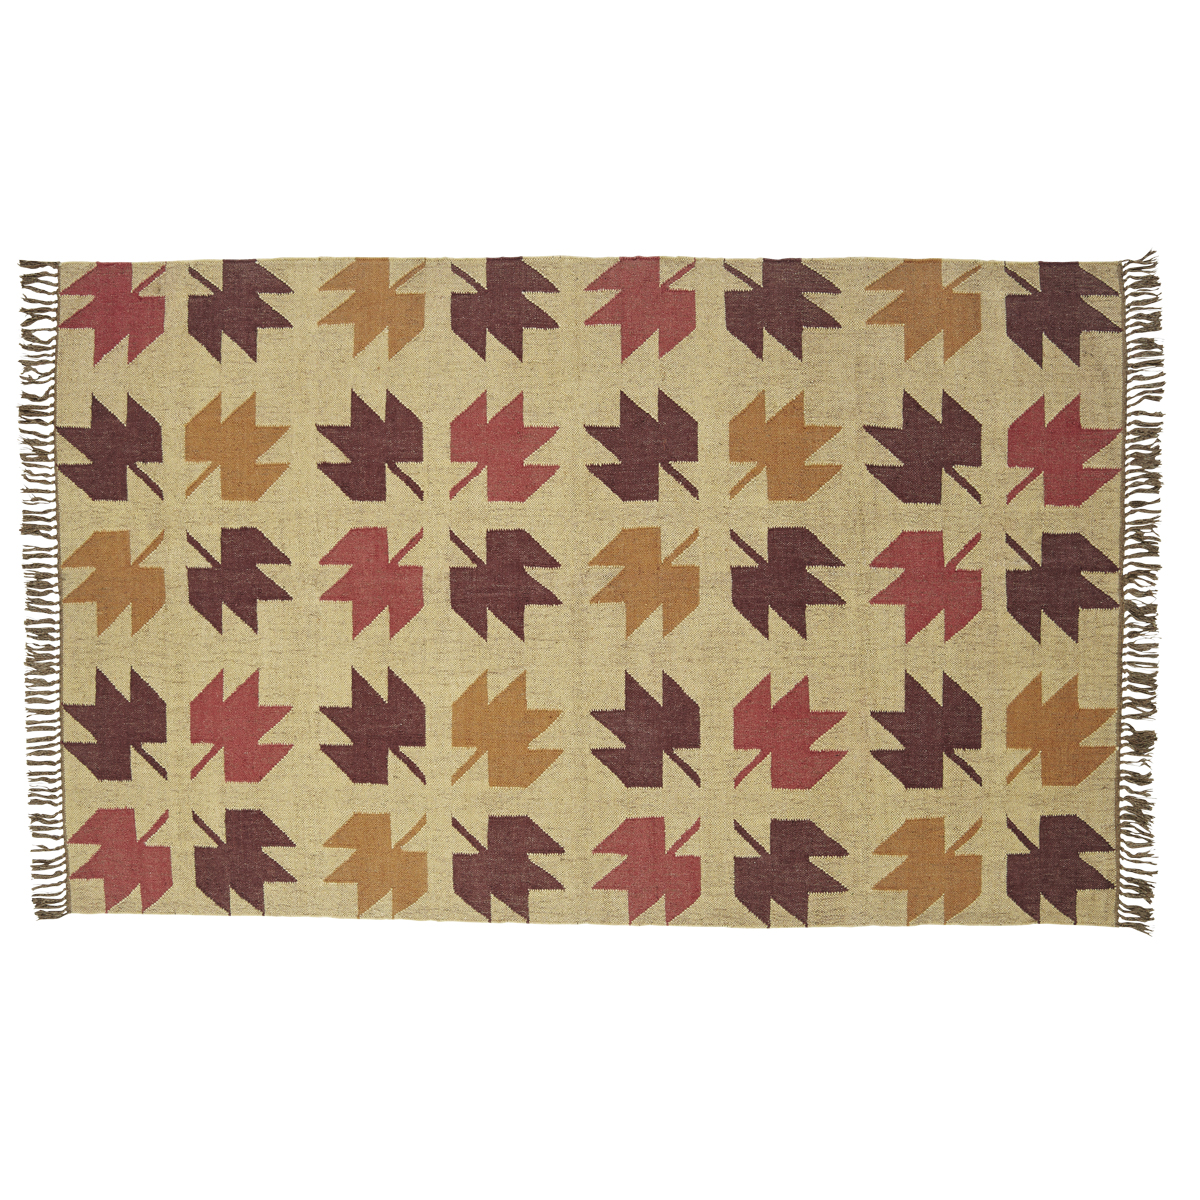 BRADDOCK Kilim Rug - 60x96 - Beige/Rust/Sable - Country Fall Leaves - VHC Brands